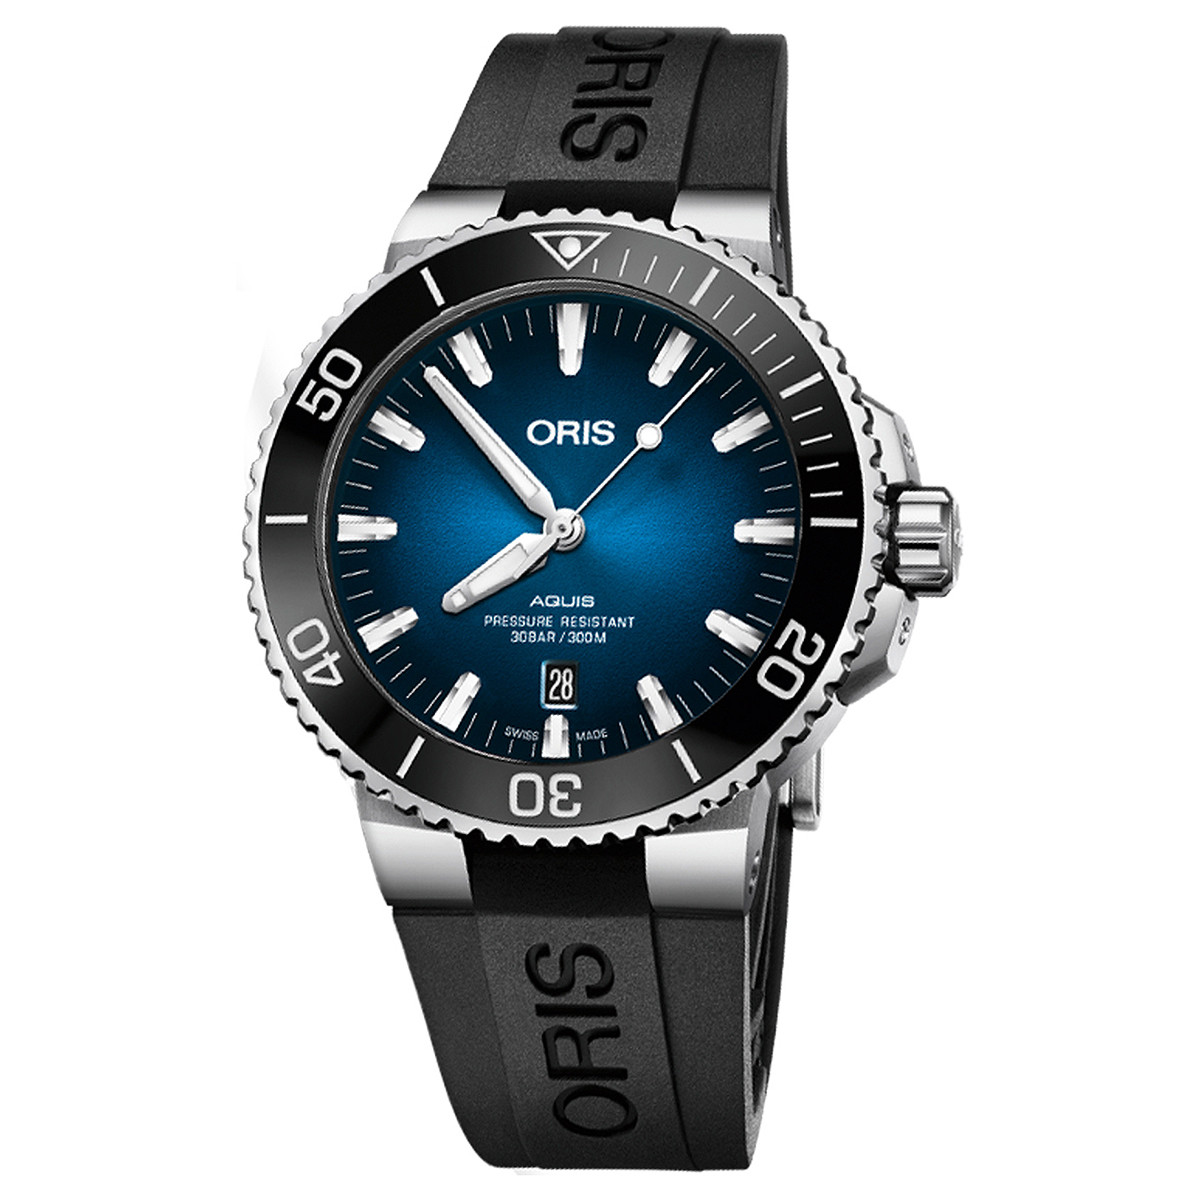 Aquis Clipperton Limited Edition (733.7730.4185)